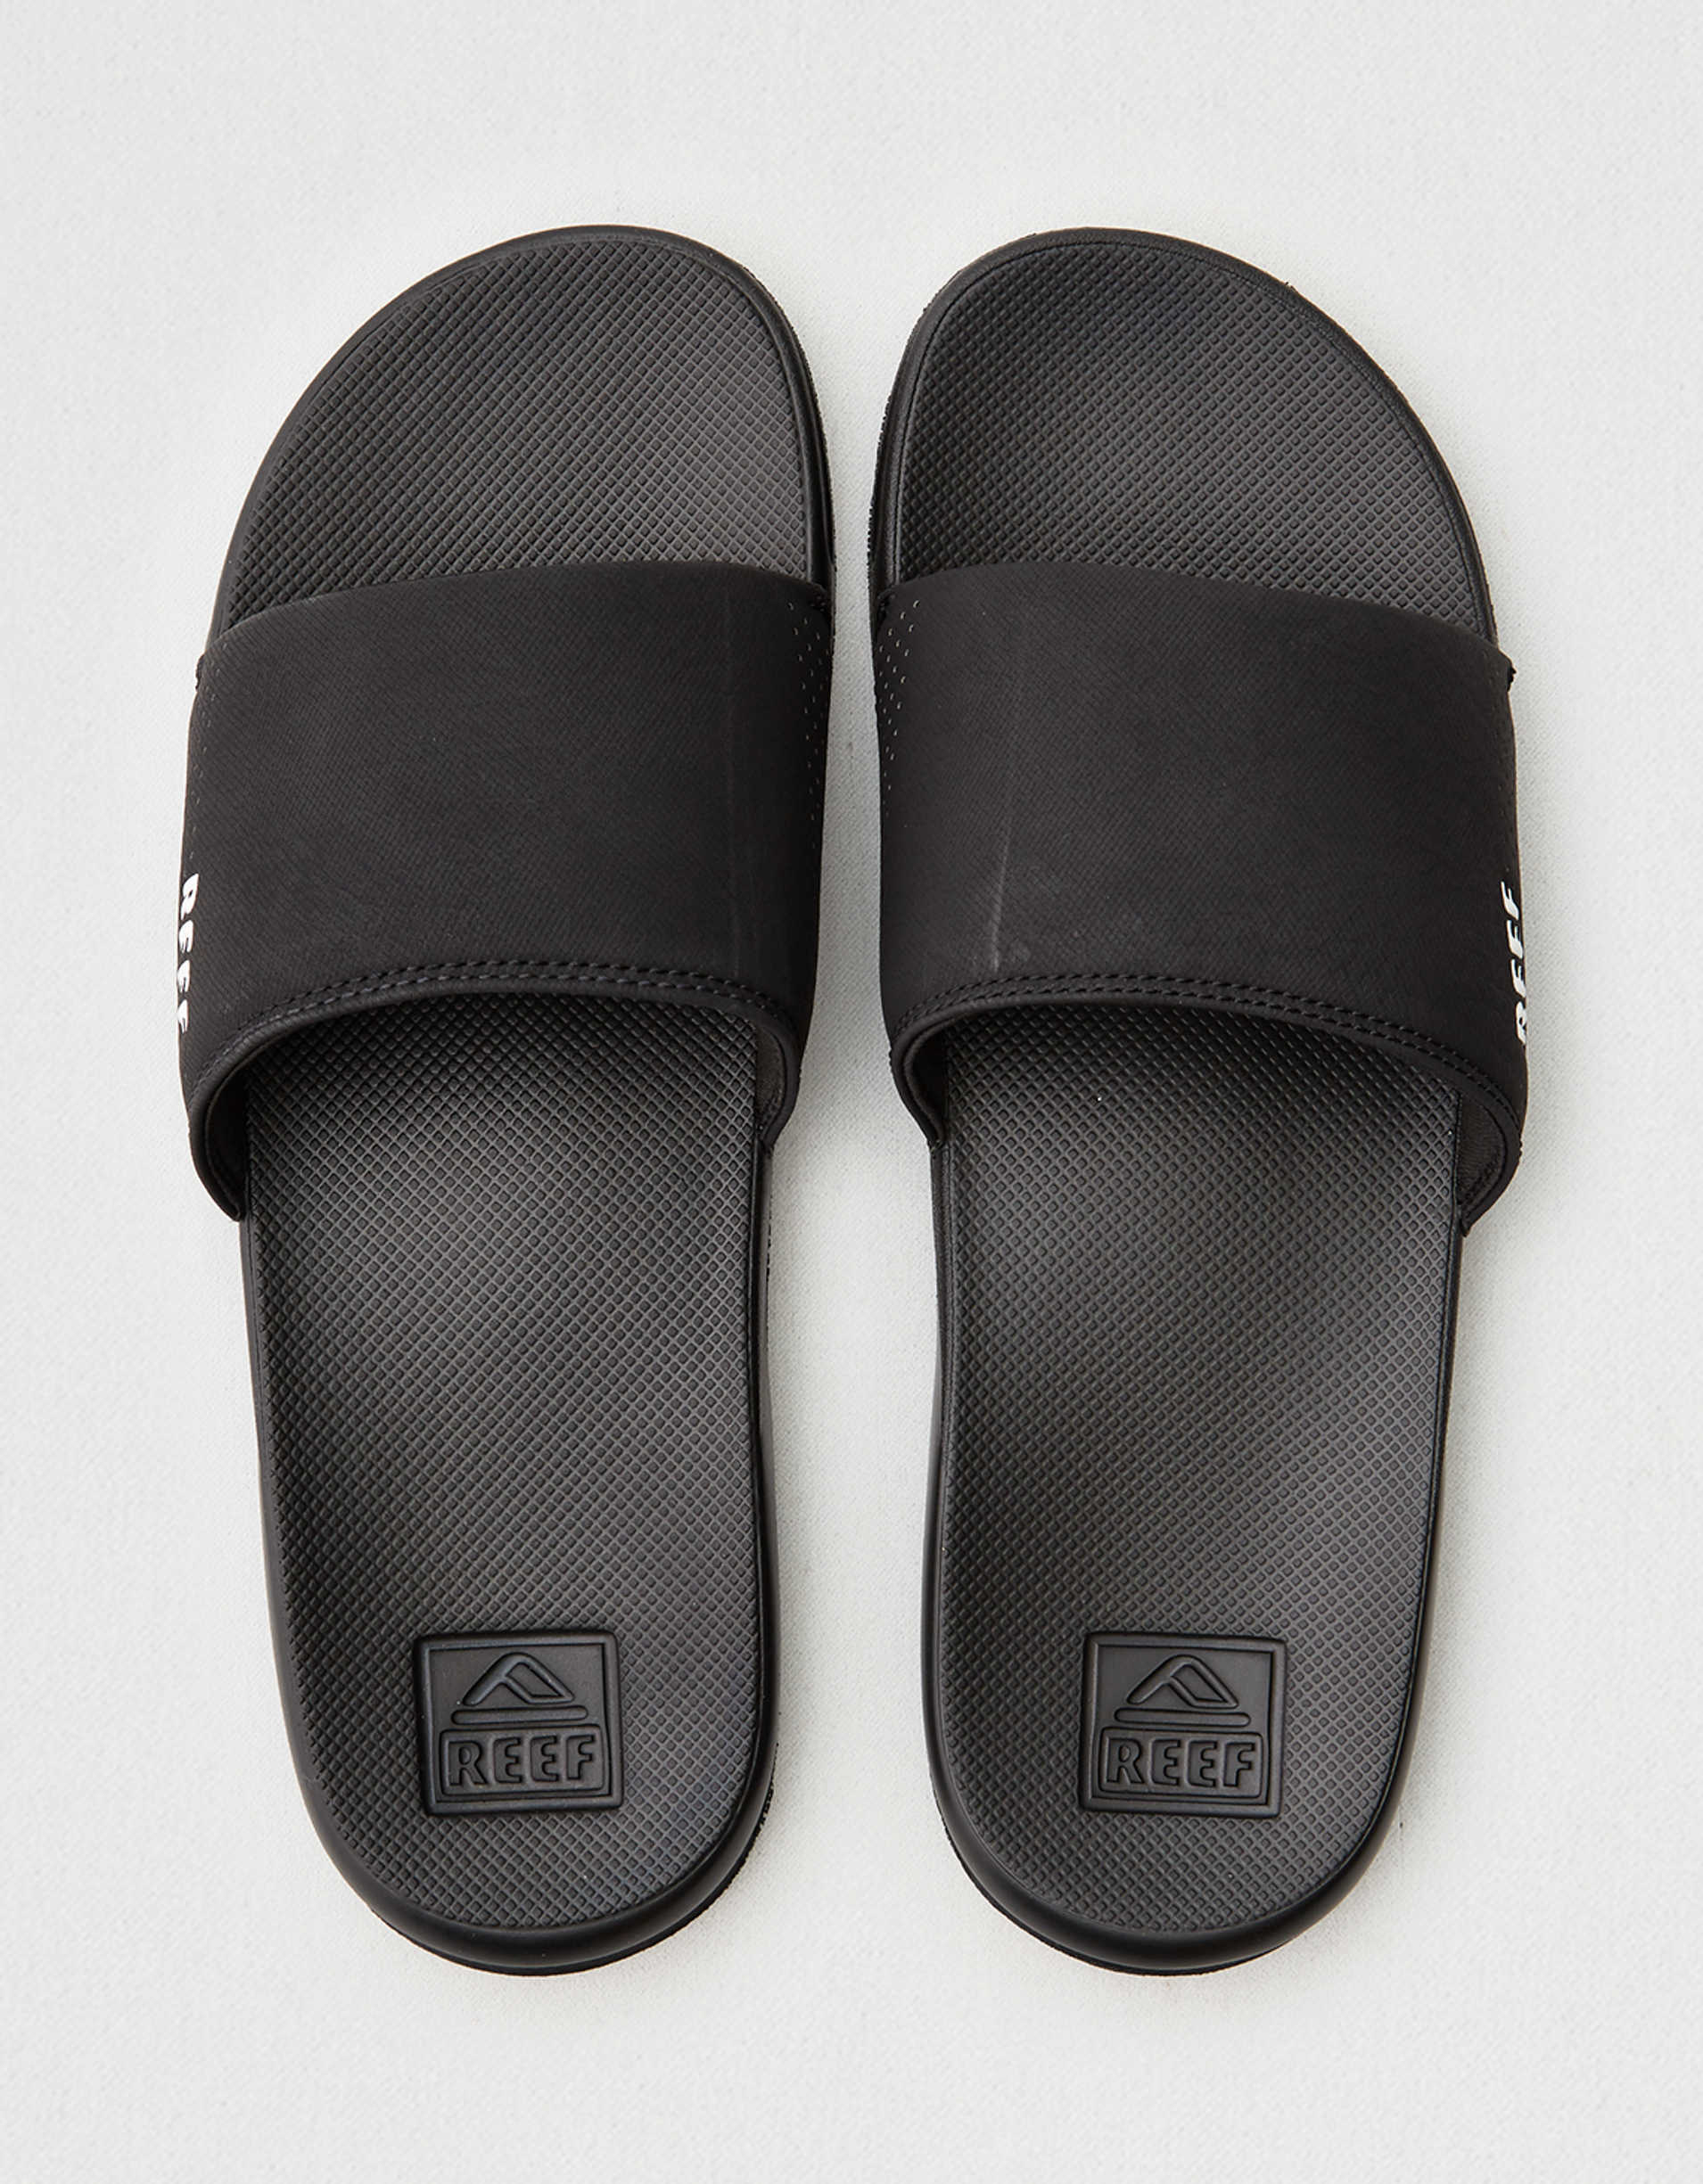 Reef Men's One Slide